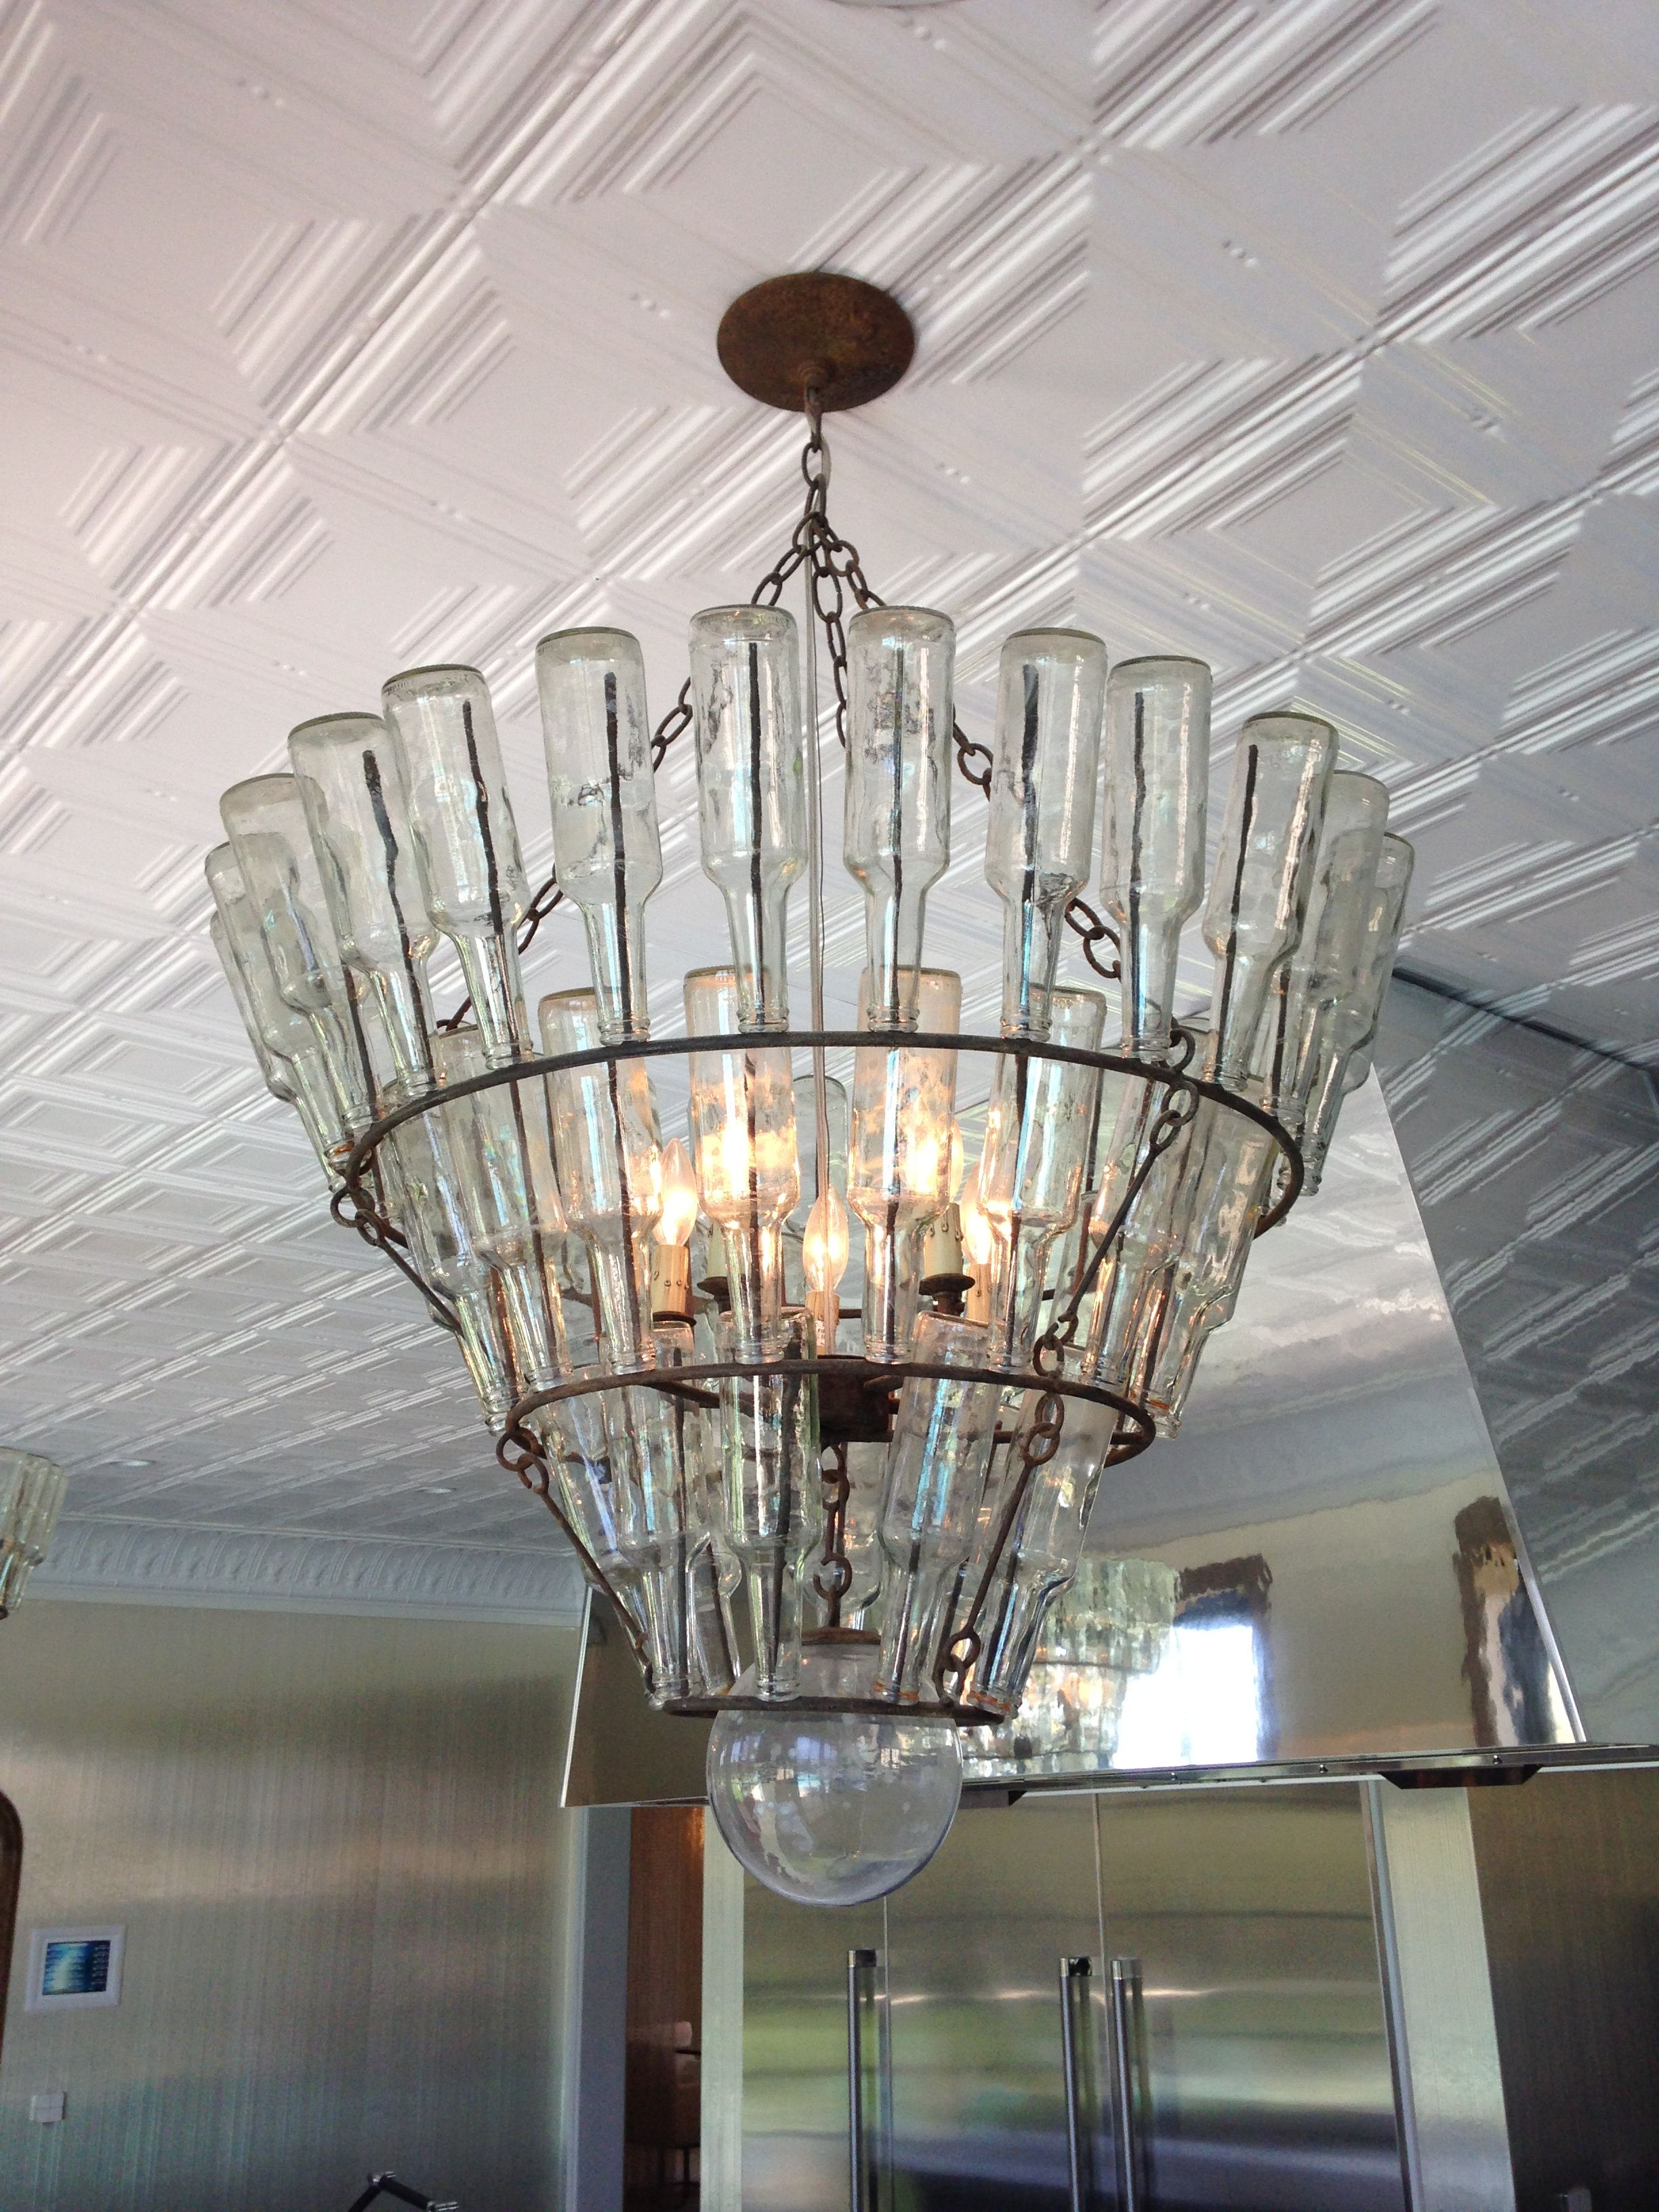 of fixtures rectangular bar cool pendant island glass clear light uk modern size breakfast led single ceiling and design over lighting dining floor for long islands luxury chandelier lamps pic kitchen crystal room lantern ideas fantastic hanging lights above full